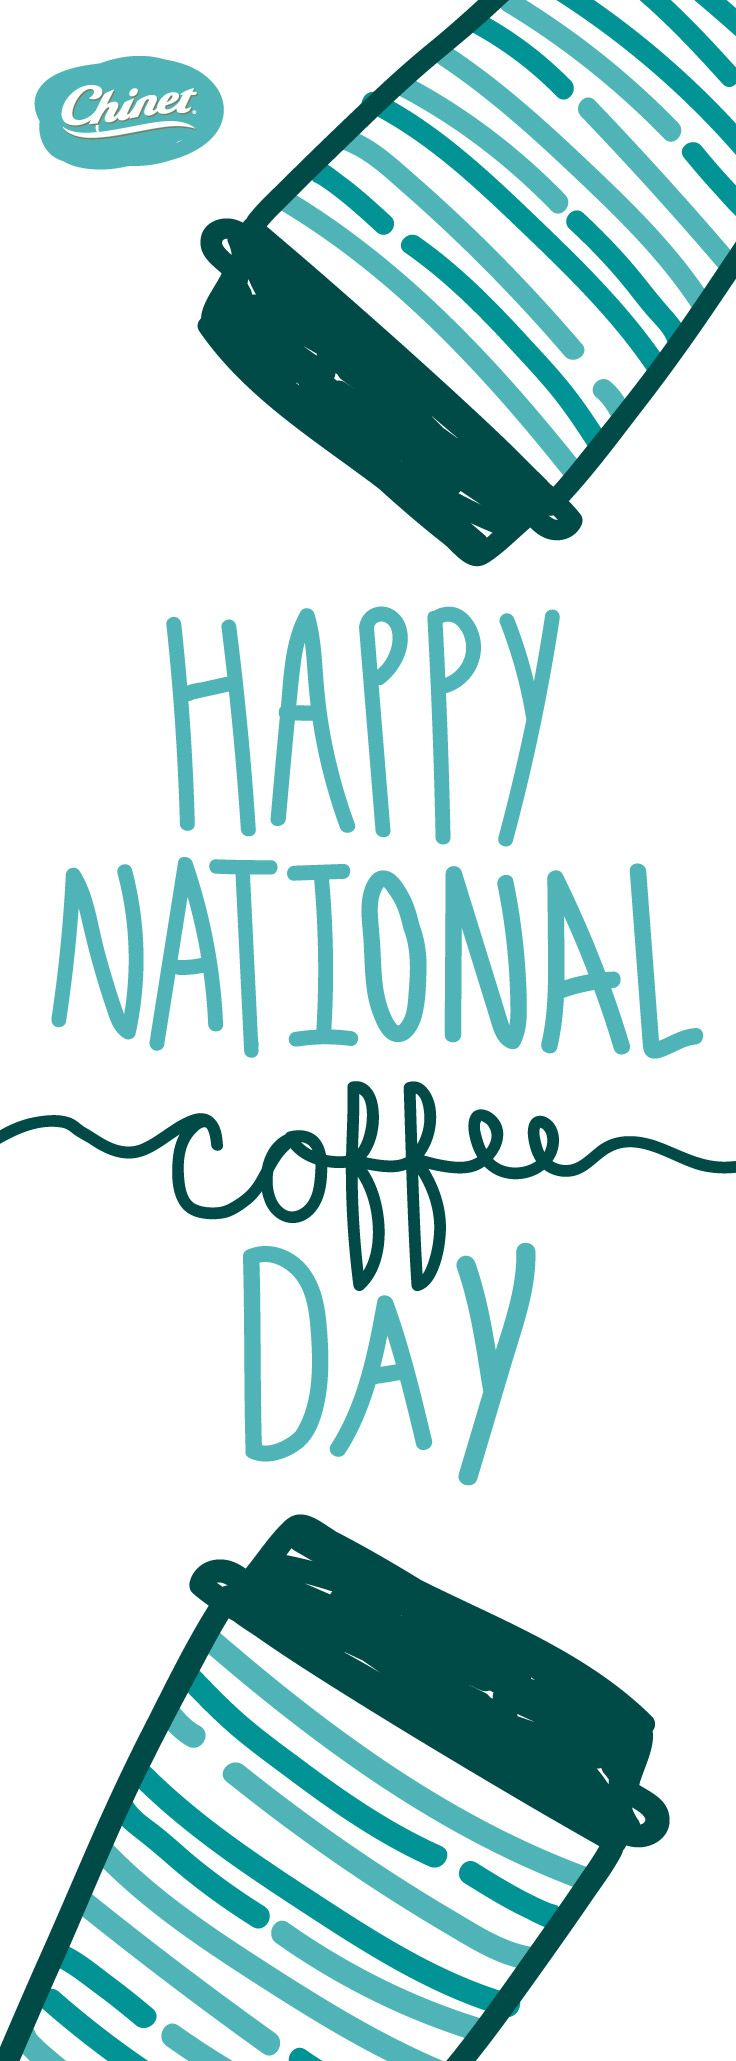 National Coffee Day is Sept. 29! Celebrate with these easy tips from the experts at the Chinet® brand.